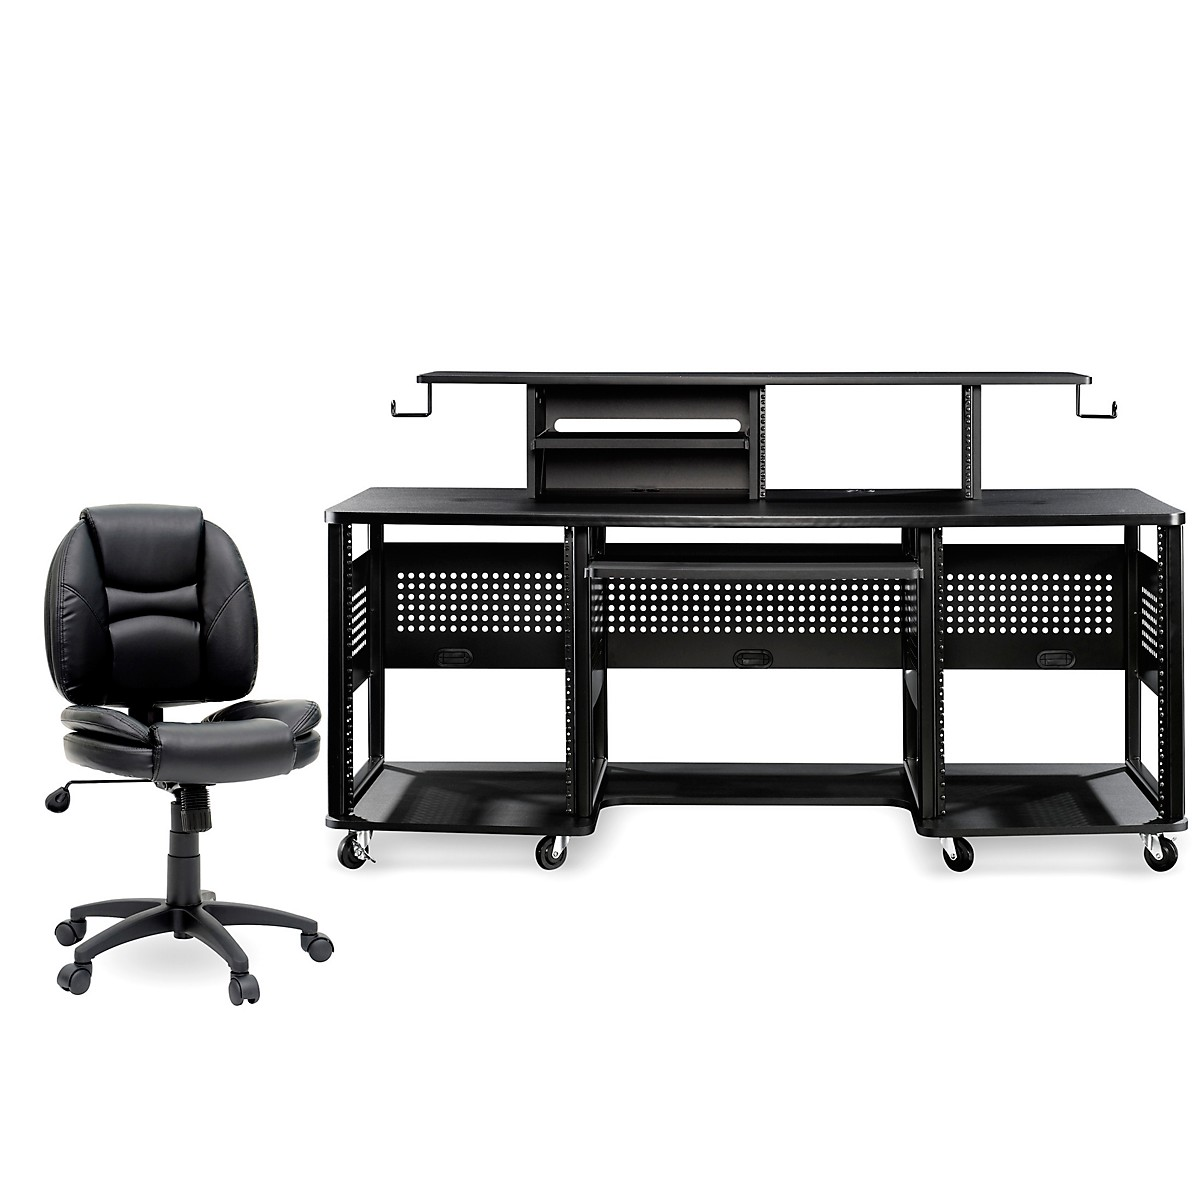 Studio RTA Producer Station Black and Task Chair DuraPlush Bundle